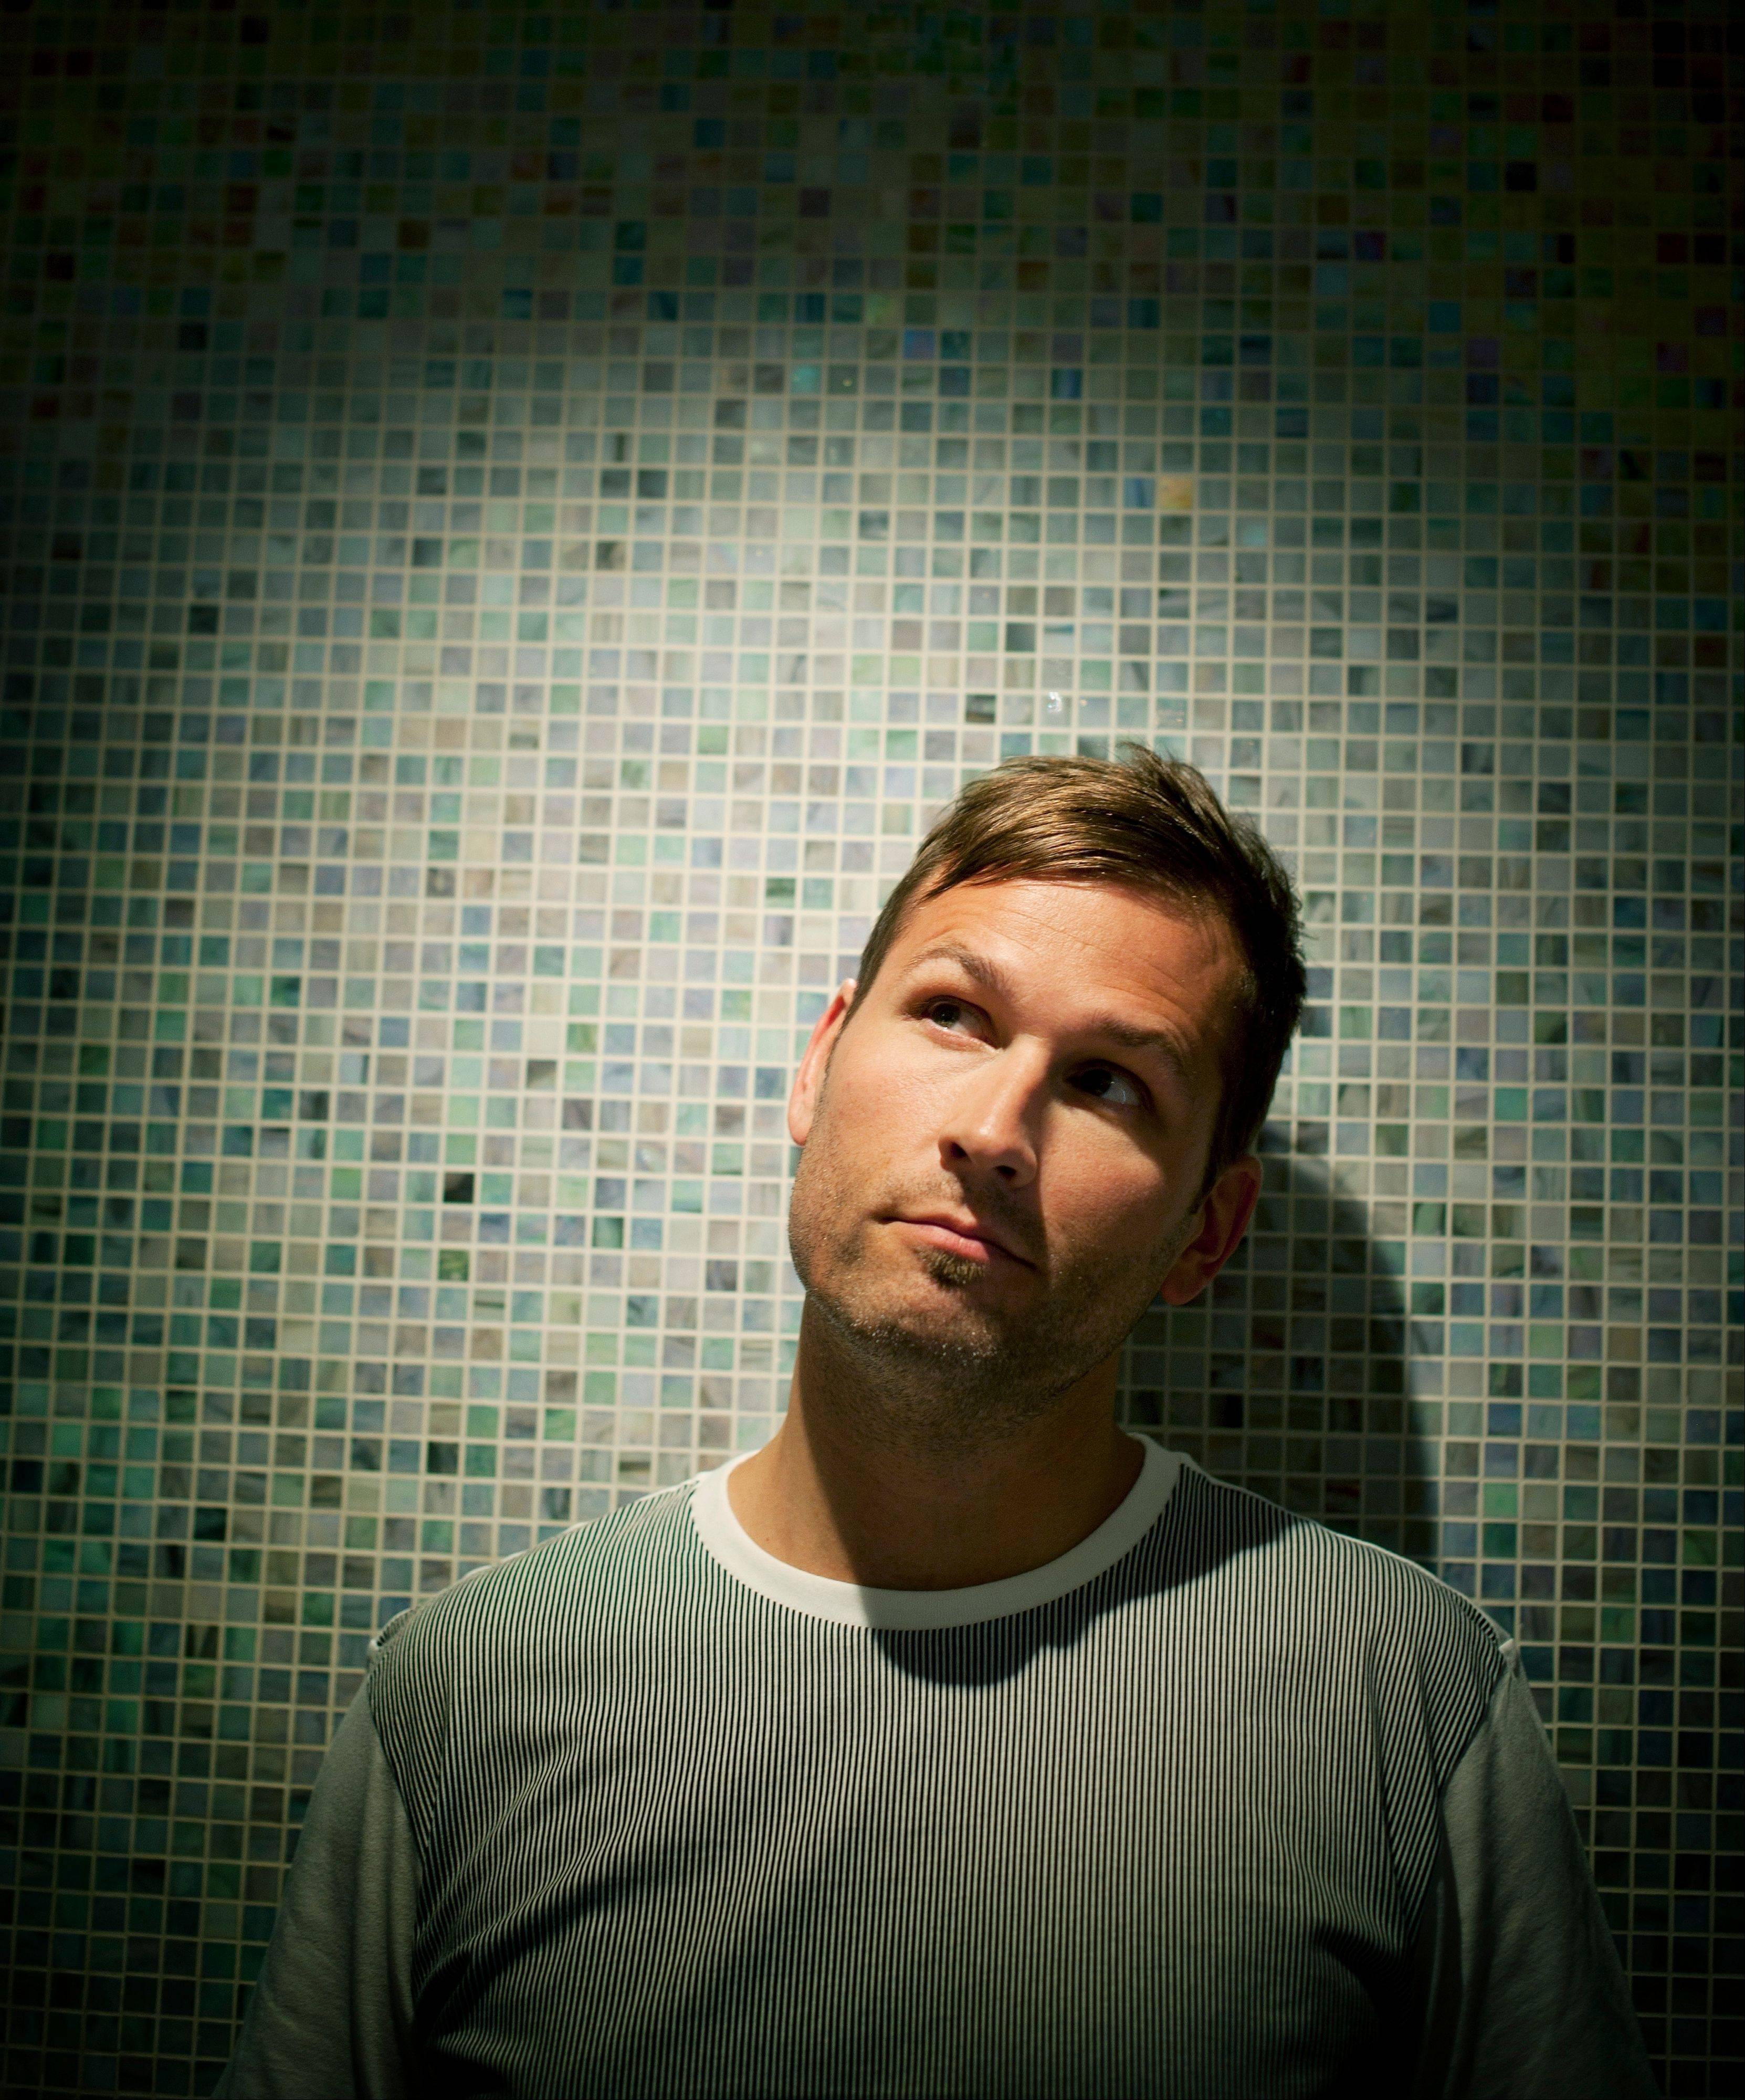 Northbrook native Kaskade, a DJ whose real name is Ryan Raddon, is nominated for a Grammy Award for Best Dance/Electronica Album.